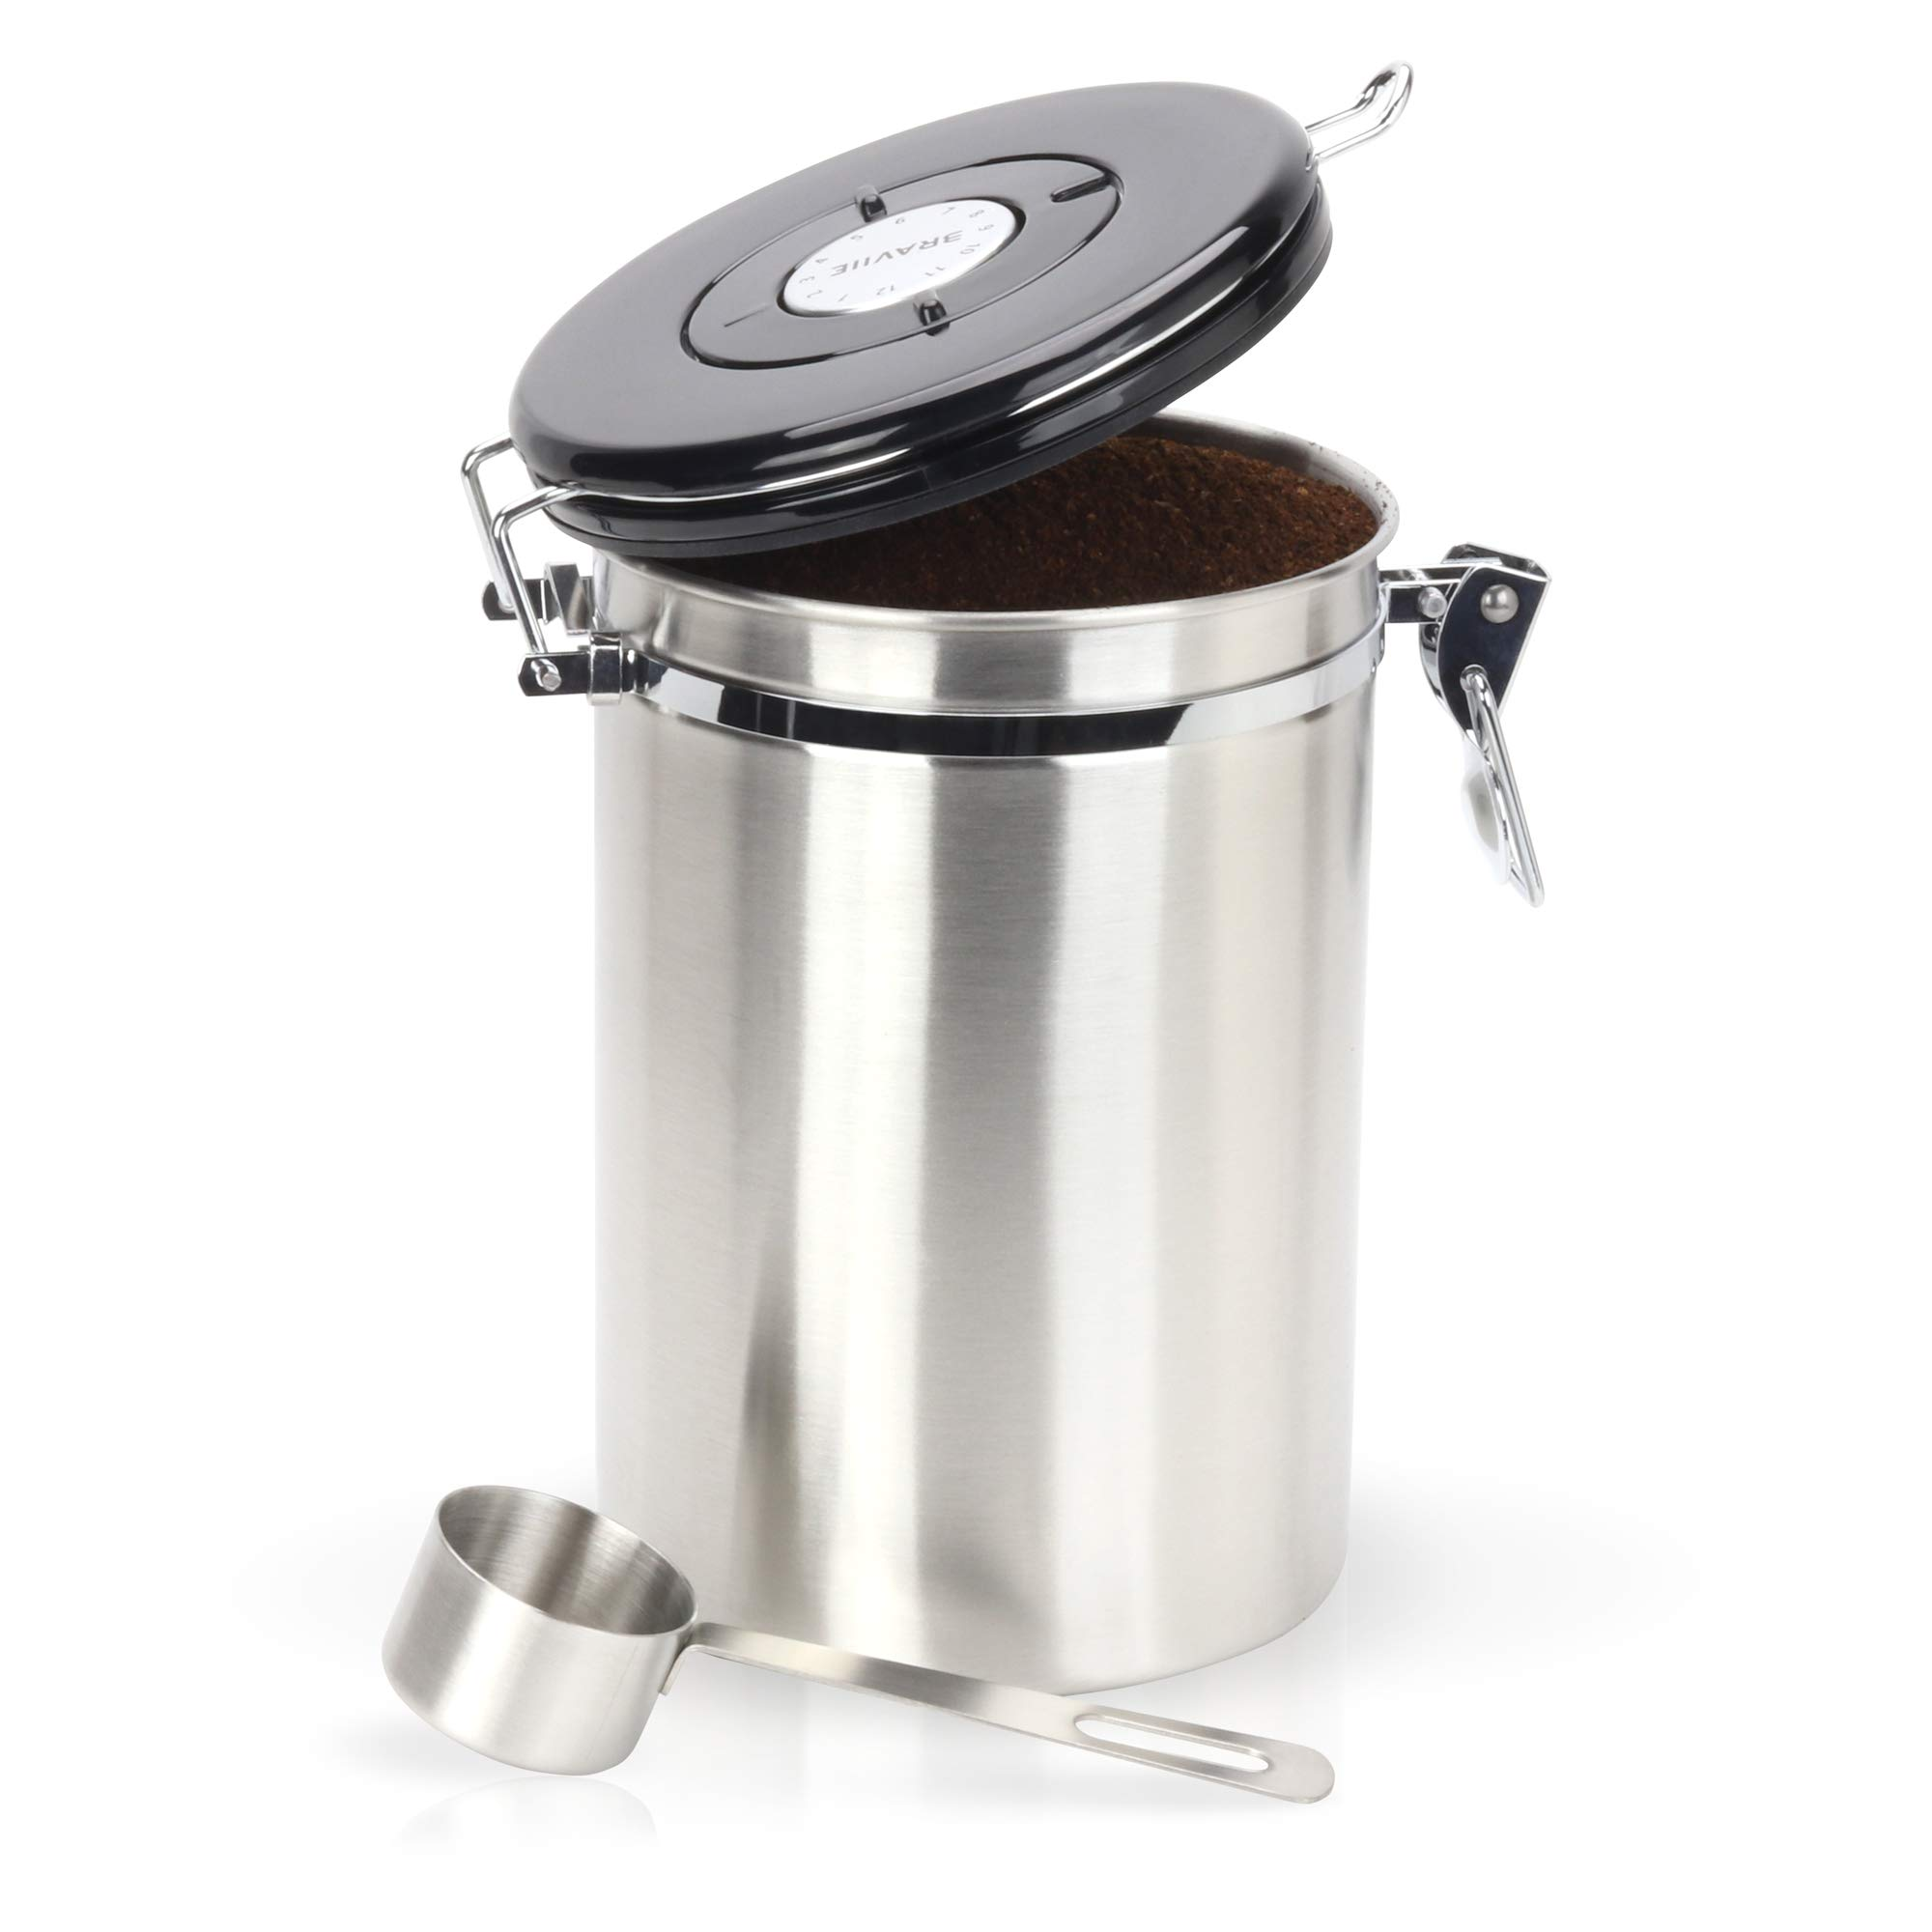 Gorgeous Coffee Canister - Stainless Steel Storage Container with Scoop - Keeps Your Coffee Airtight Fresh and Flavorful by Braviie